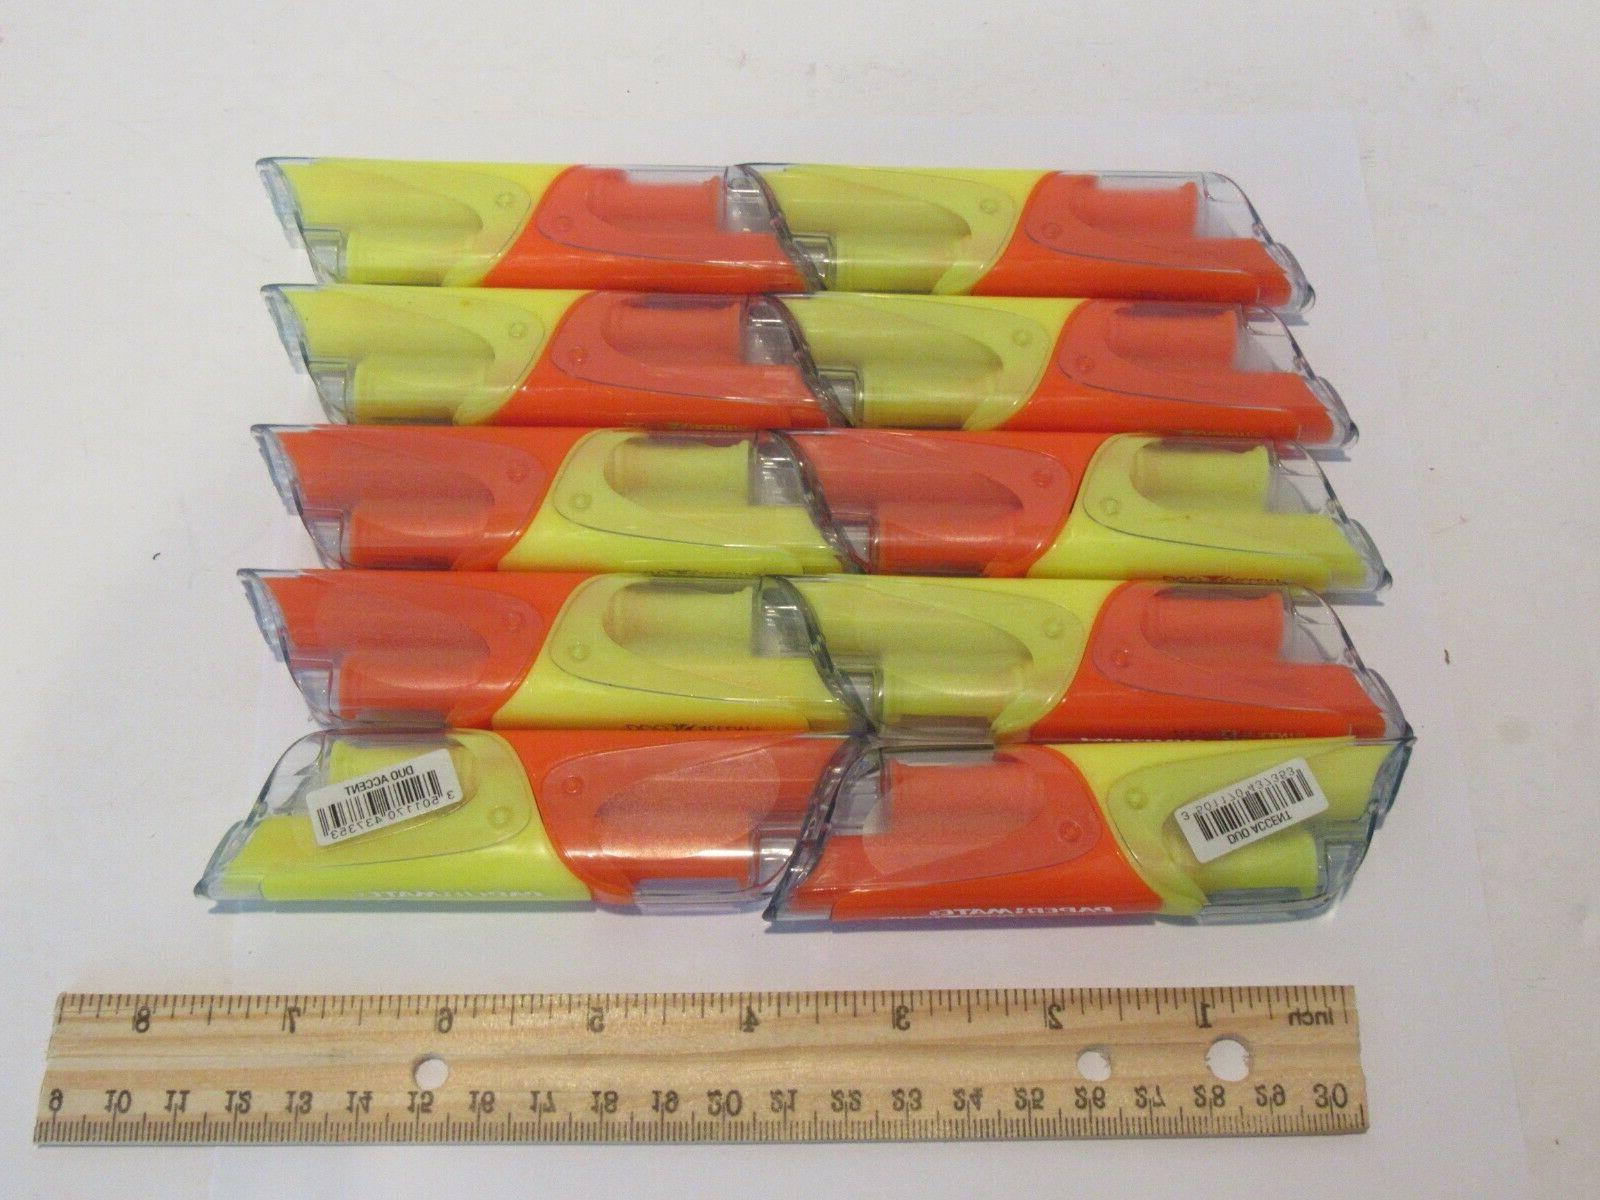 10 duo accent highlighter pens orange yellow